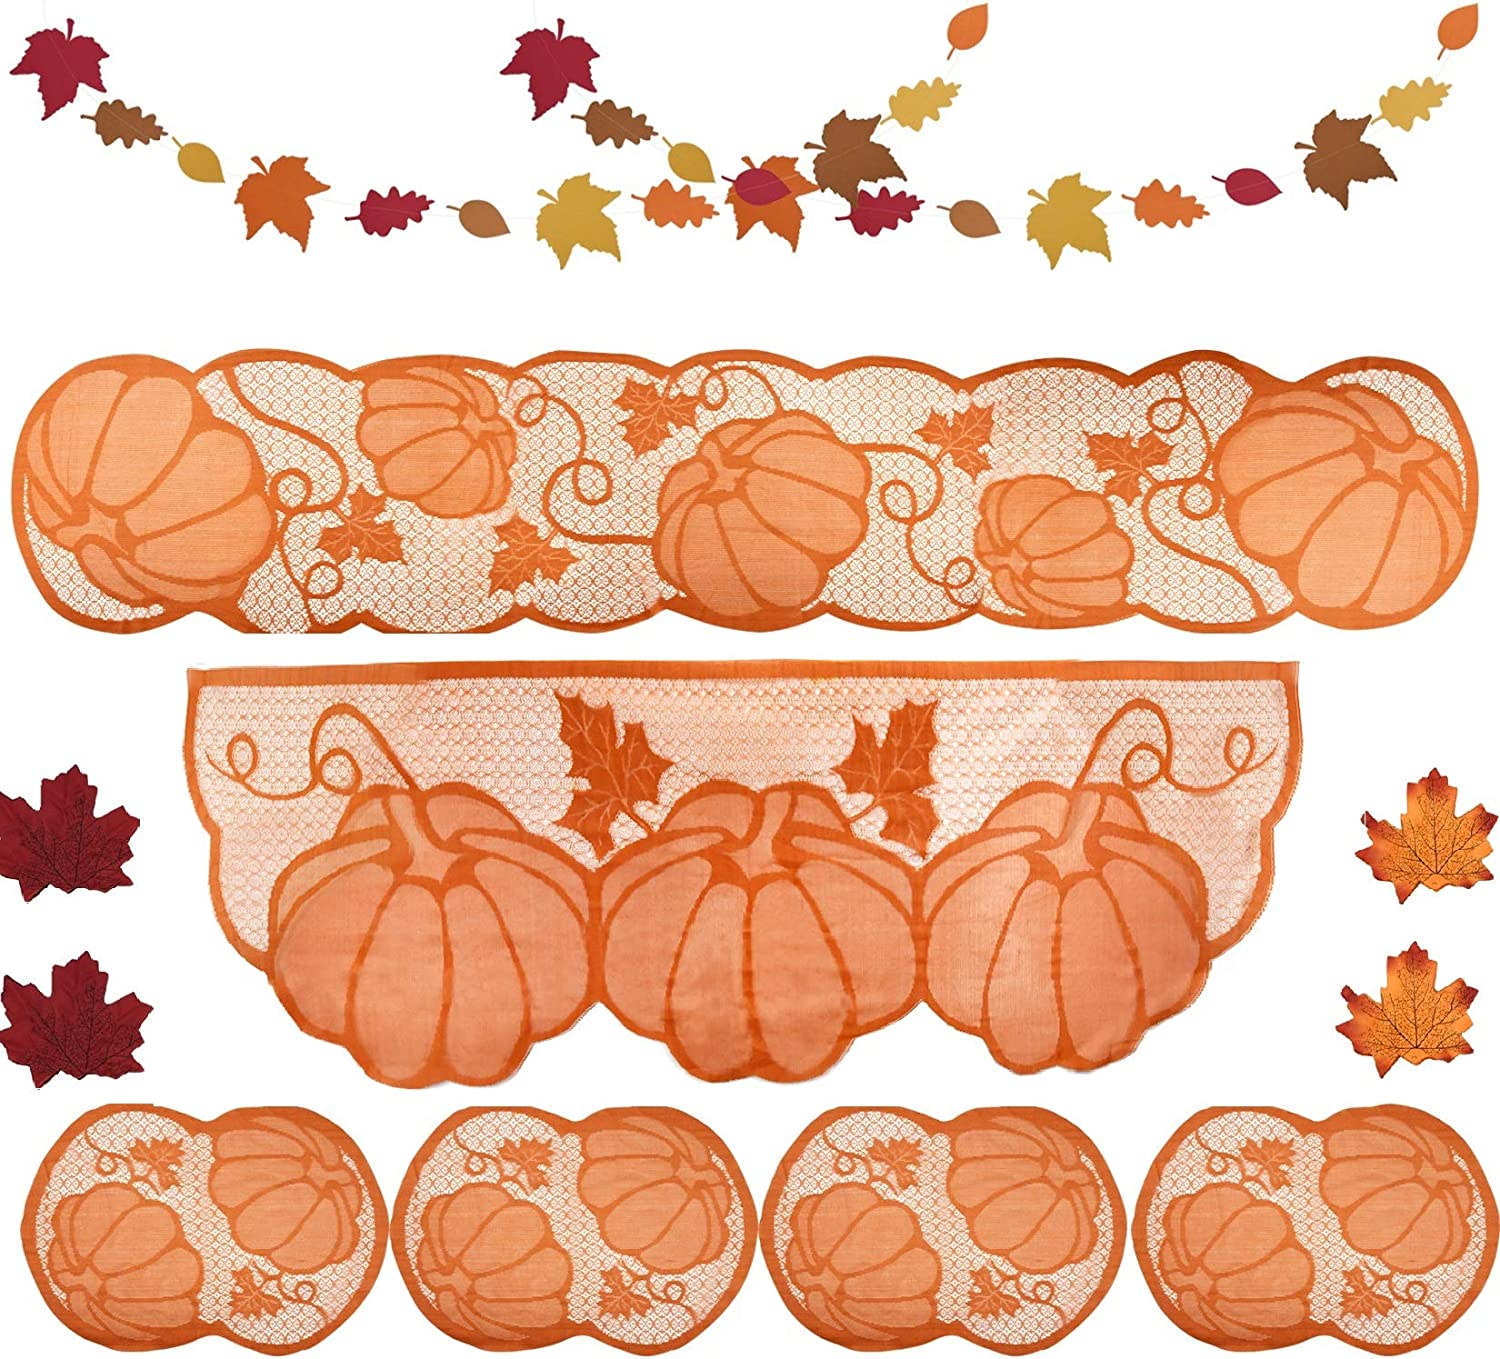 8Pack Thanksgiving Decoration Tablecloth Thanksgiving Placemats Table Runner Thanksgiving Fireplace Mantel Scarf Fall Lace Home Decoration with Banner and Leaves for Thanksgiving Autumn Party